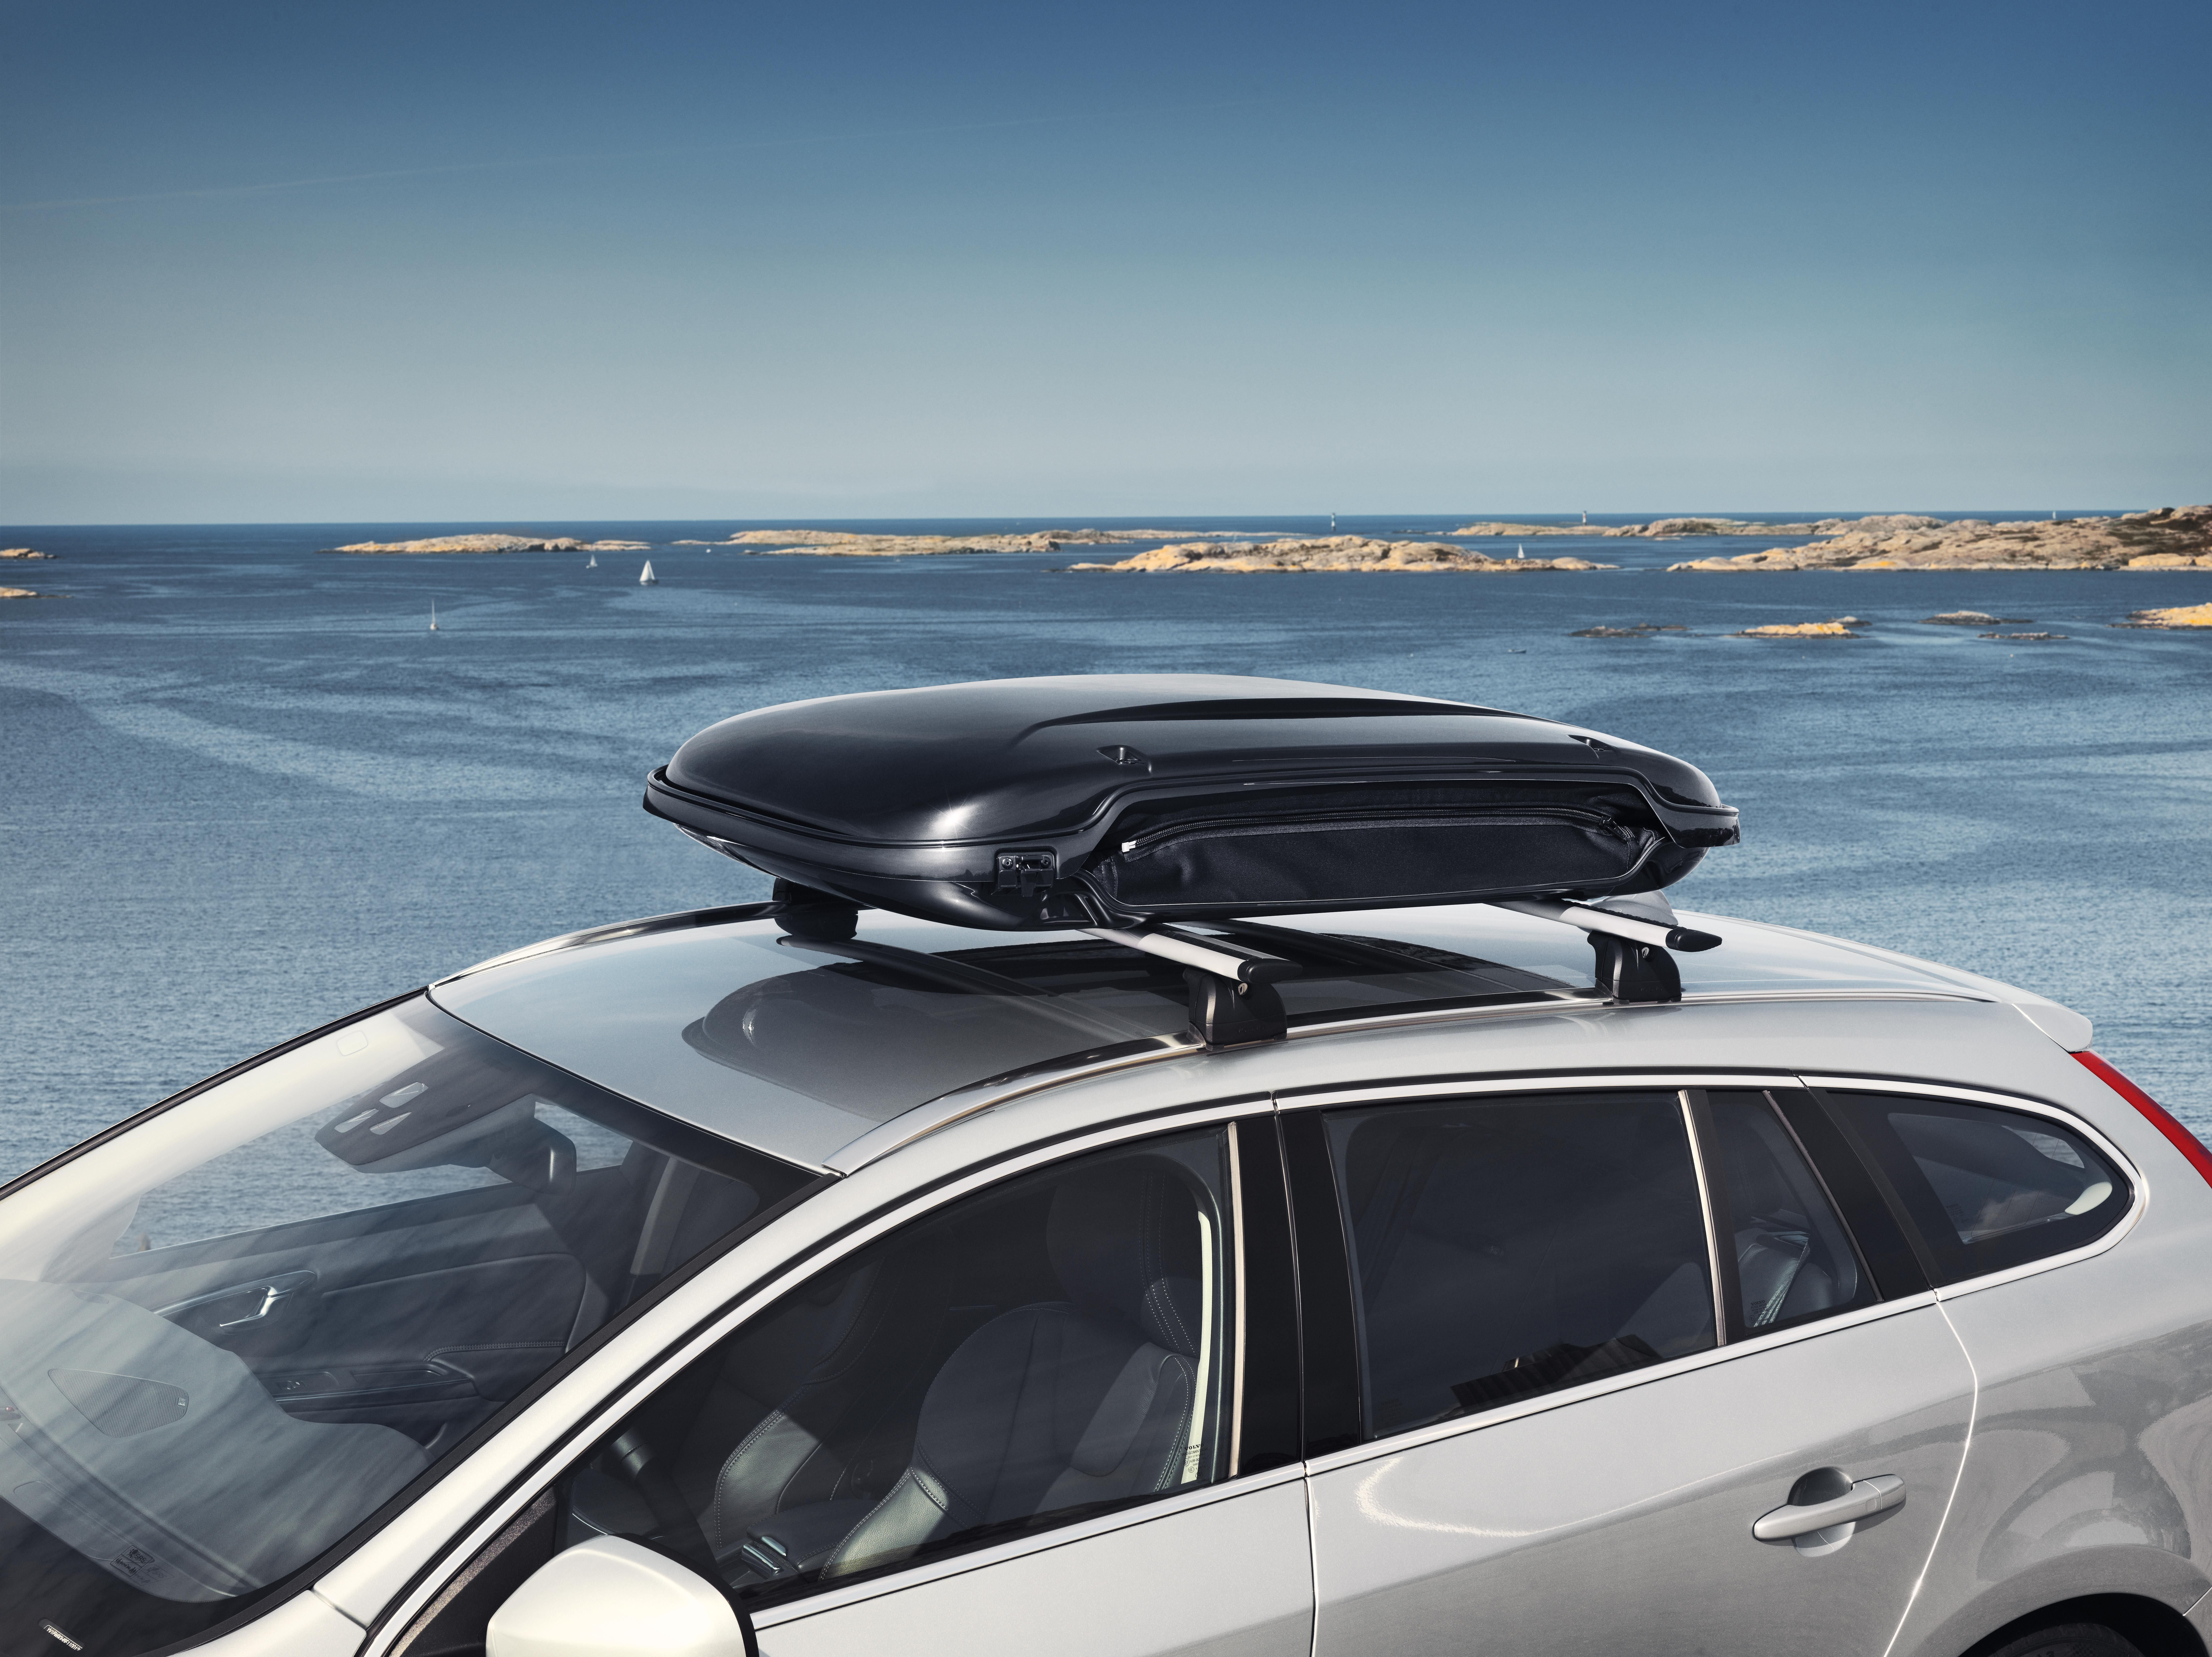 Volvo Culver City >> Cargo box. Expandable roof box | Roof box, Volvo xc90, Volvo